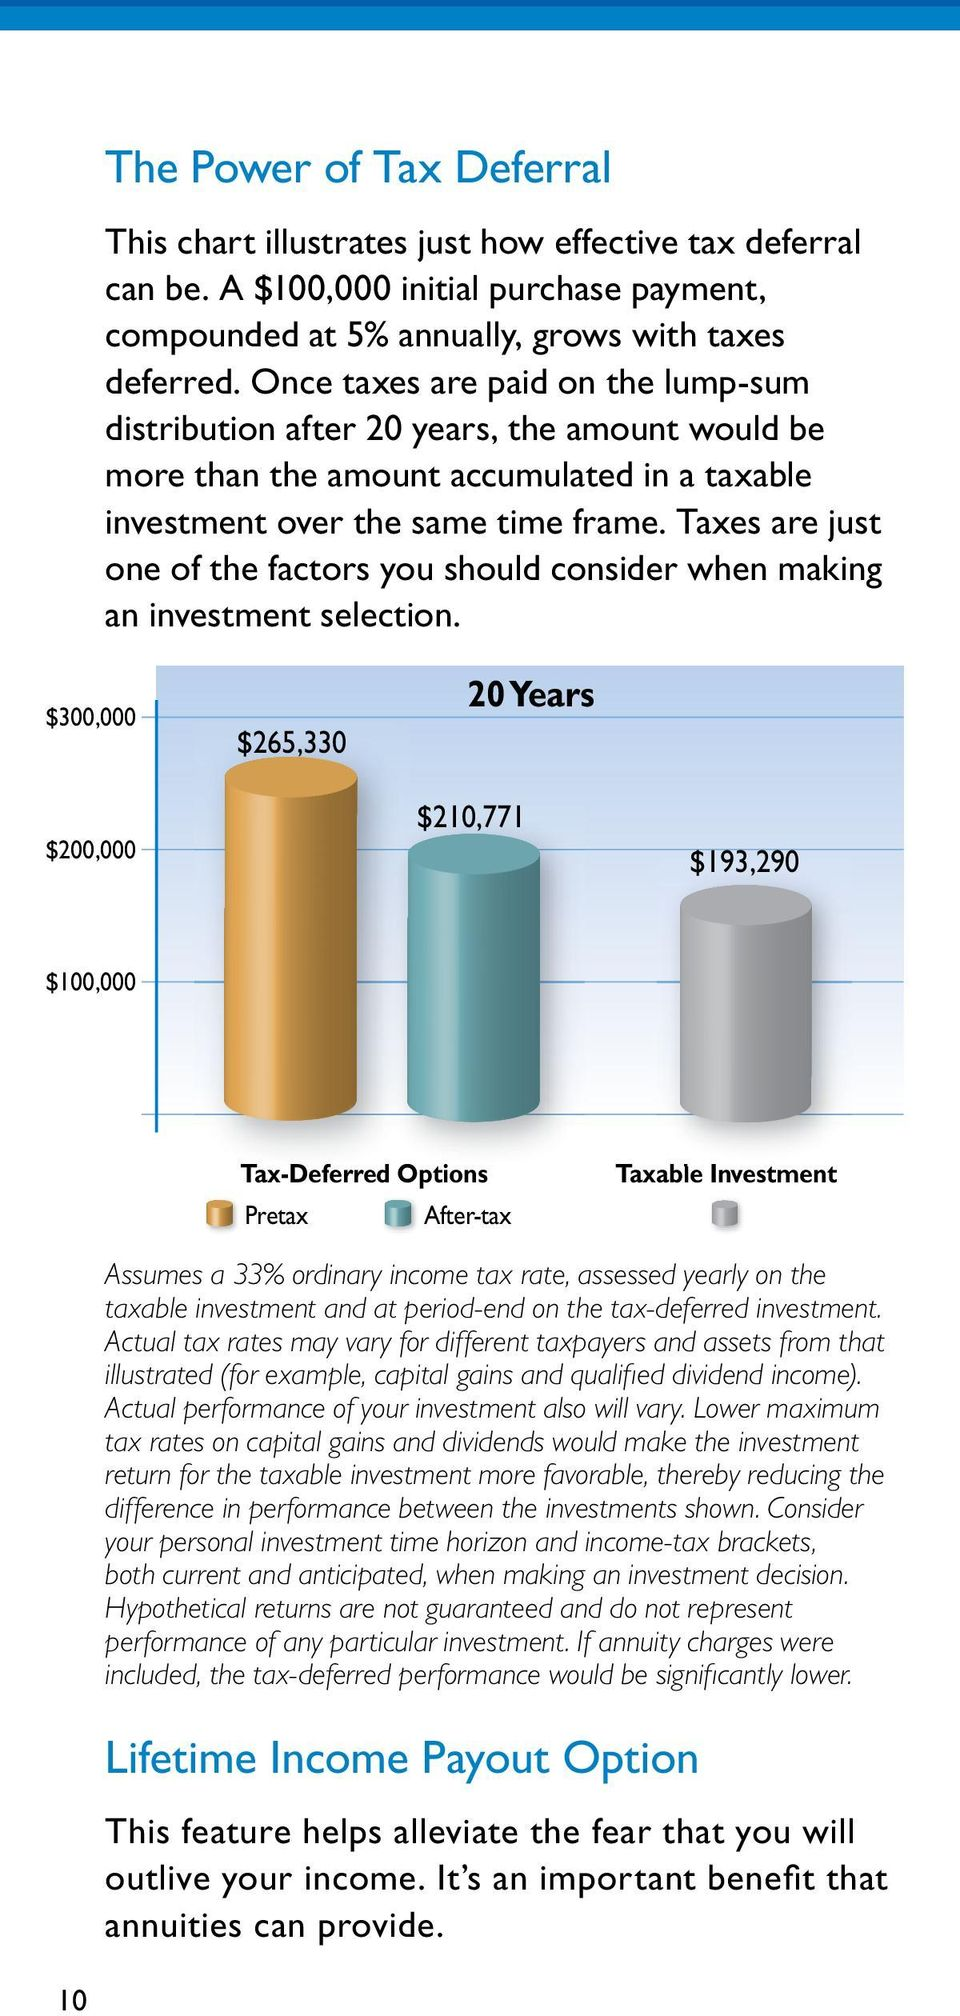 Taxes are just one of the factors you should consider when making an investment selection.